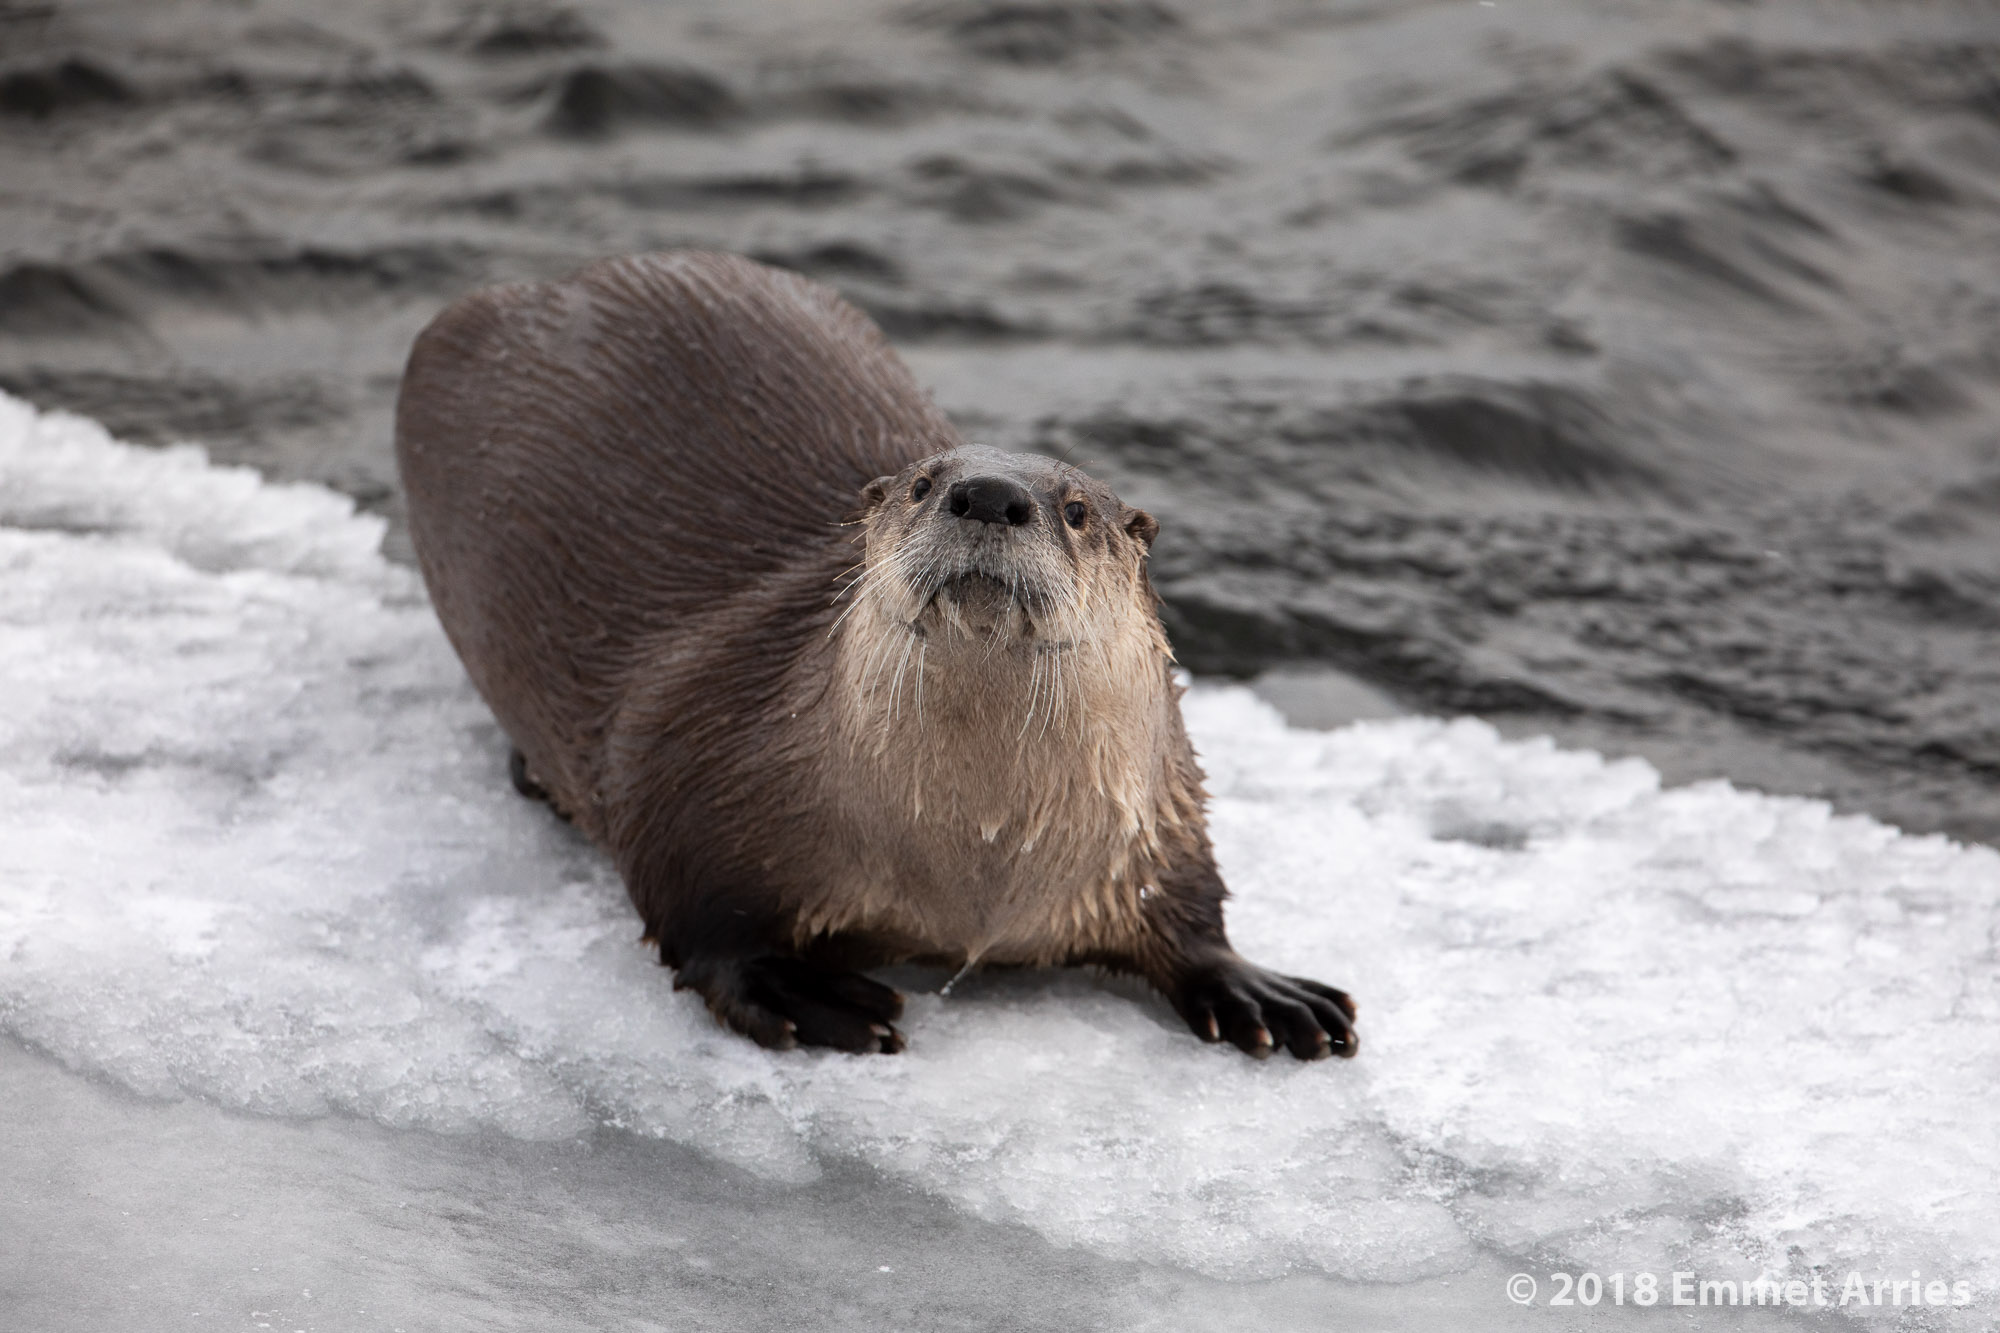 An Otter plays on the bank of a river for a half a second before returning to the water.